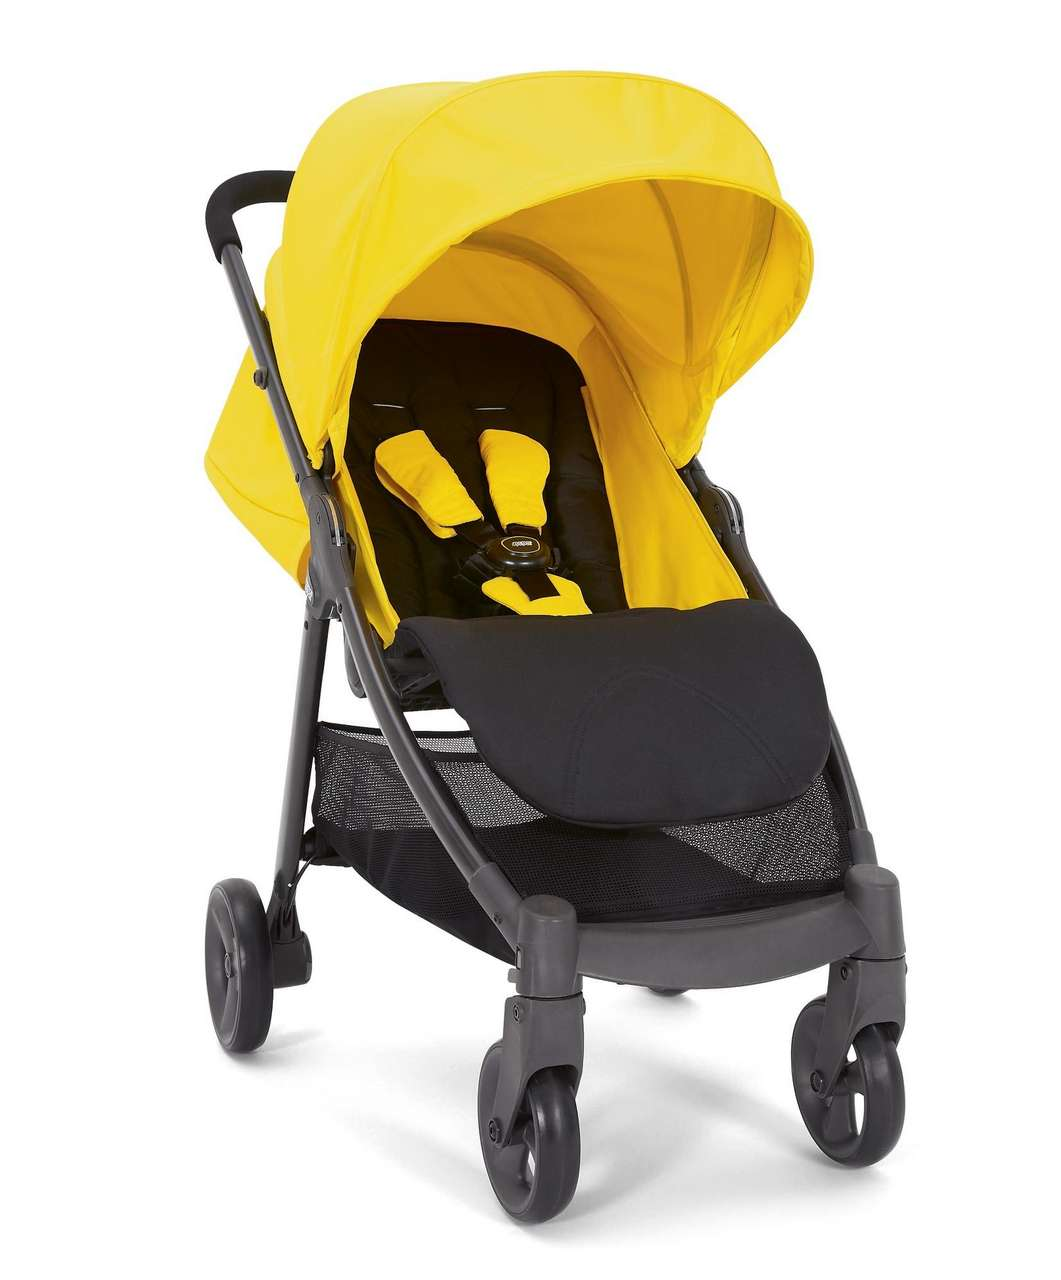 Review; Mamas & Papas Armadillo Original pushchair